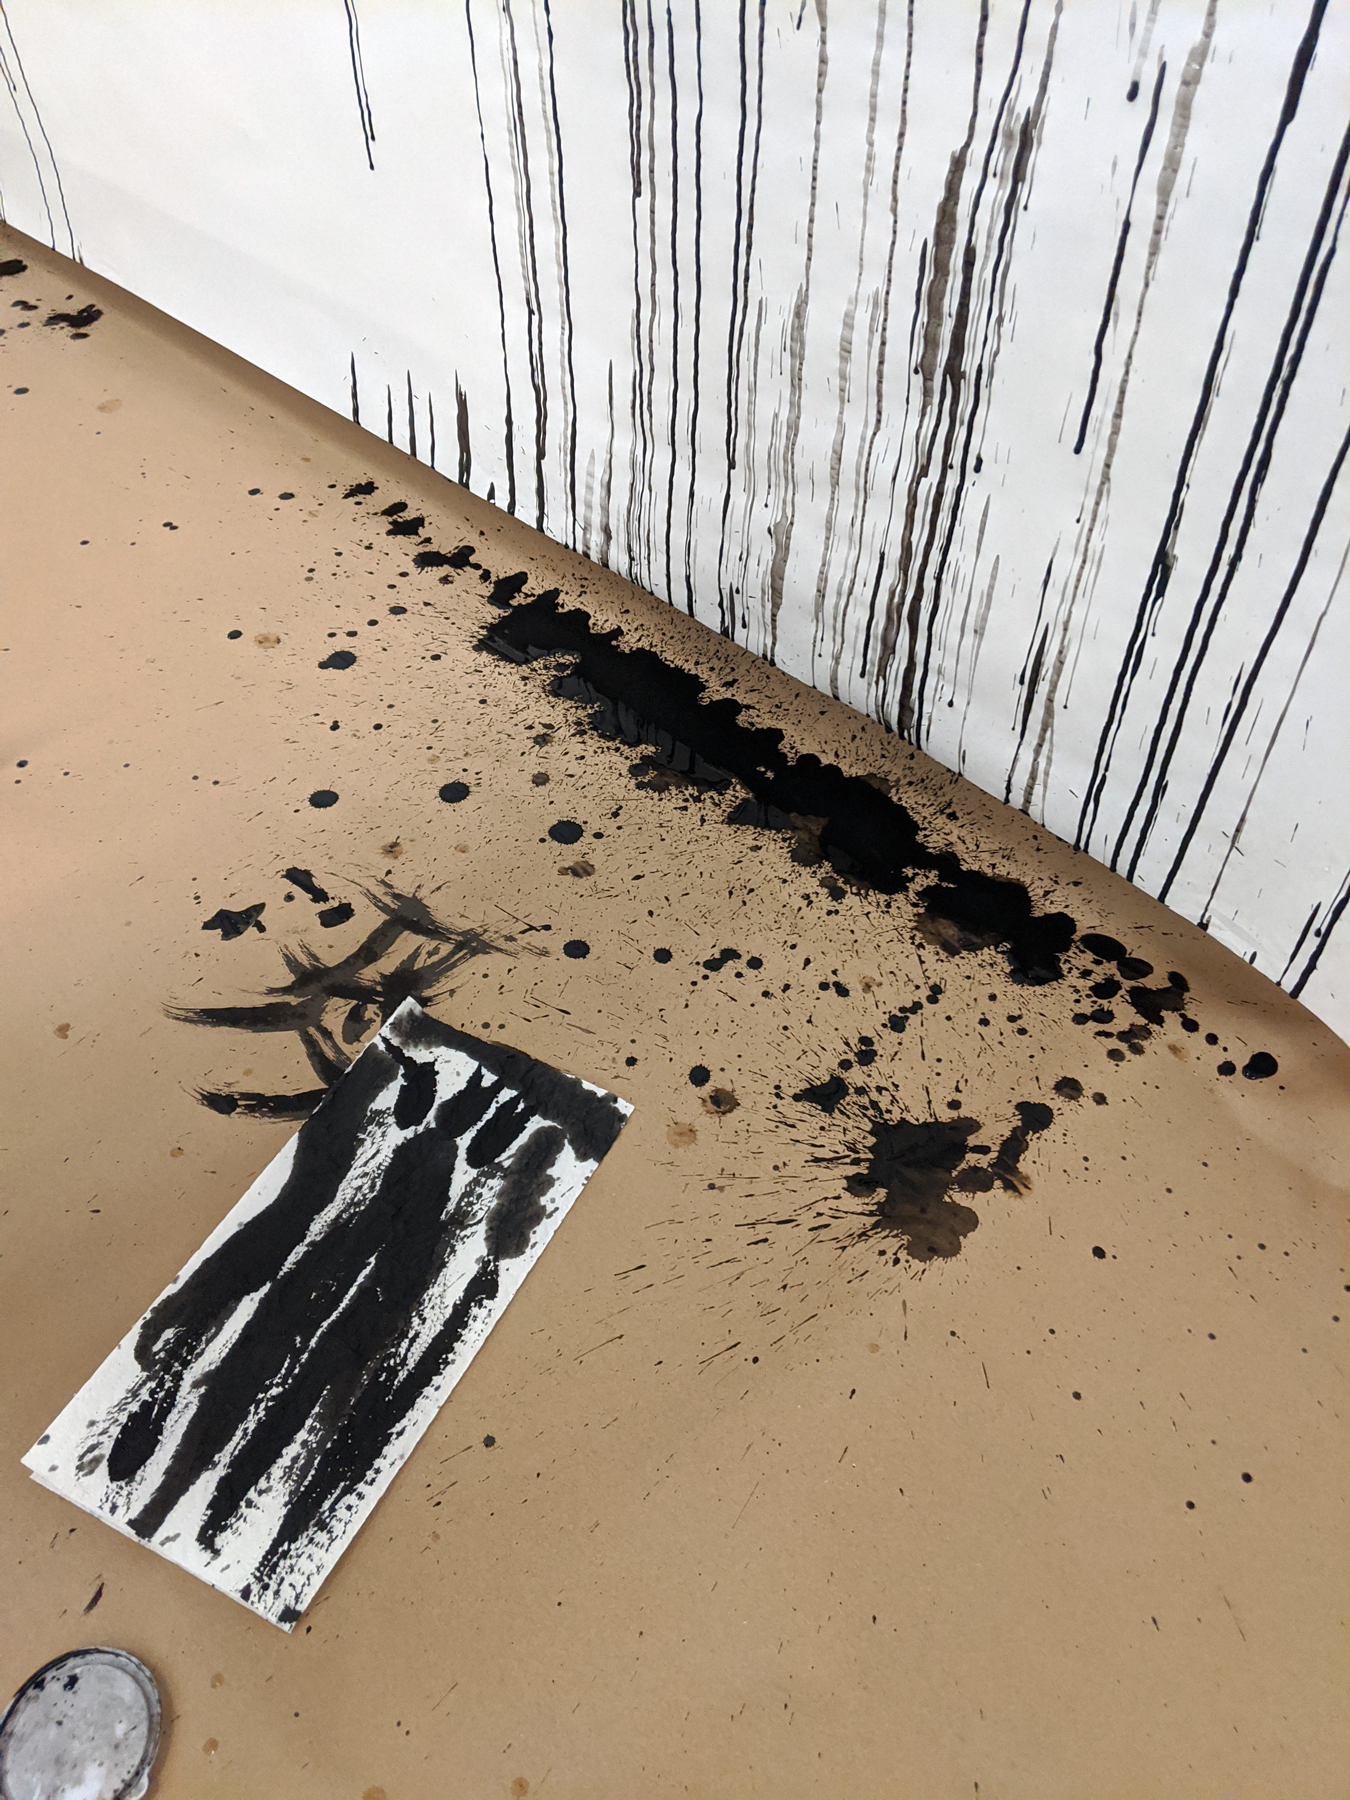 Rapid Fire Text: ink dripping down the canvas